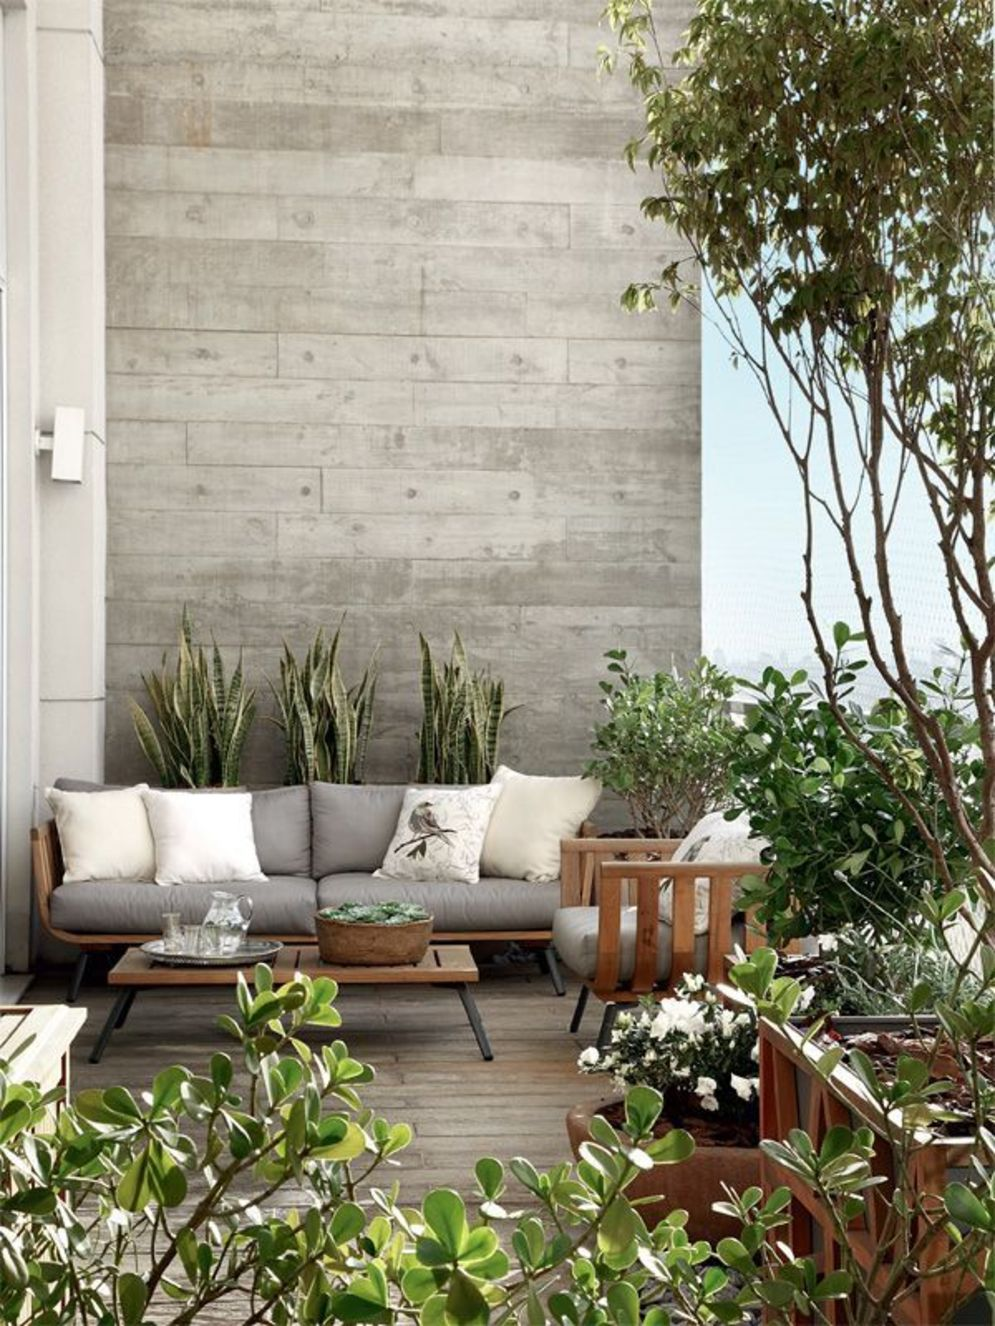 Brilliant apartment balcony ideas converted into cozy living space Image 19